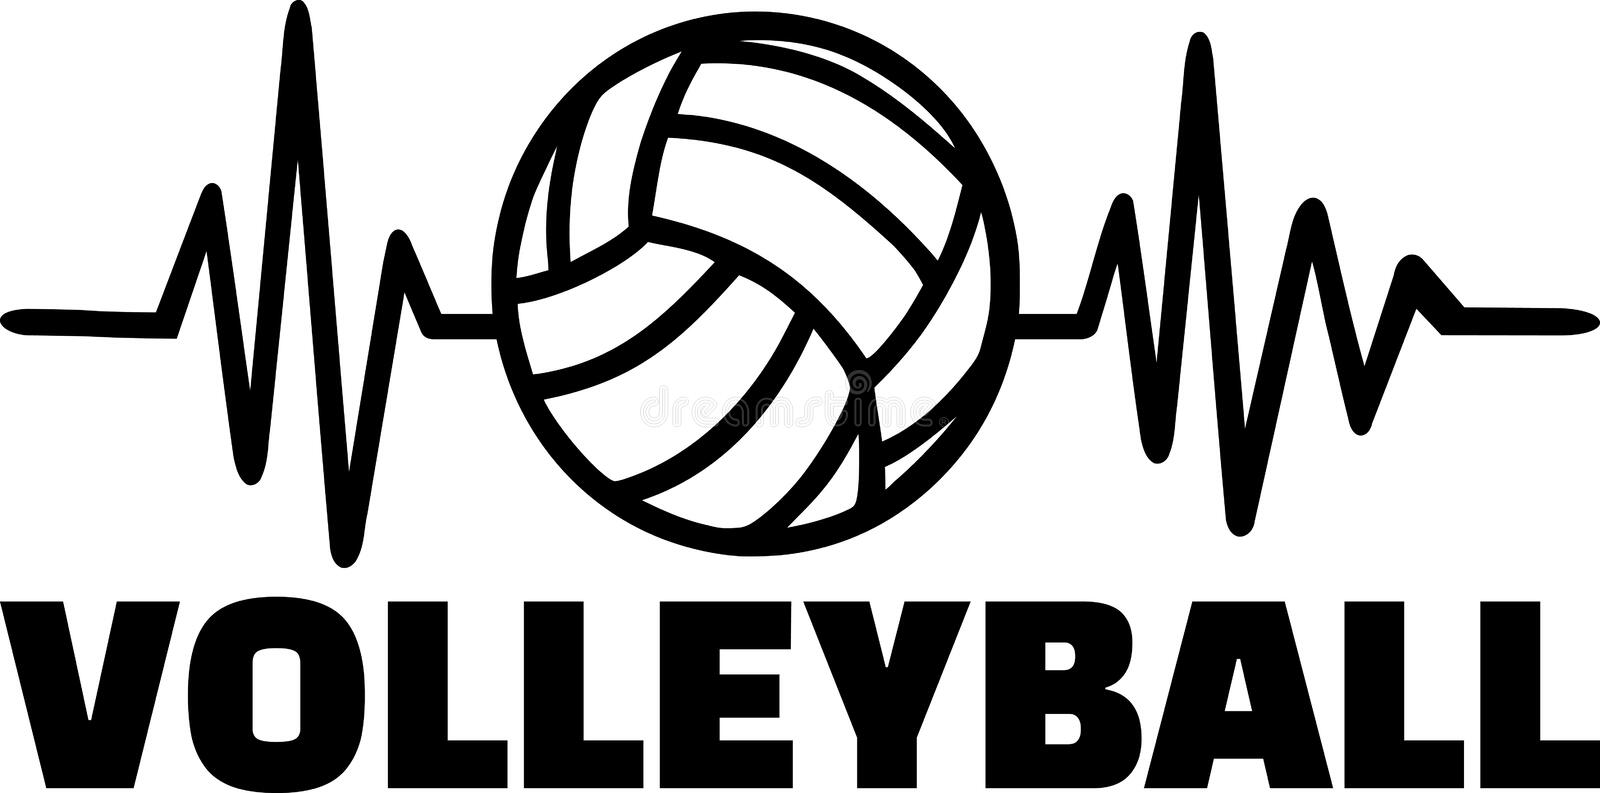 Volleyball player heartbeat line. Heartbeat pulse line with volleyball player and volleyball royalty free illustration